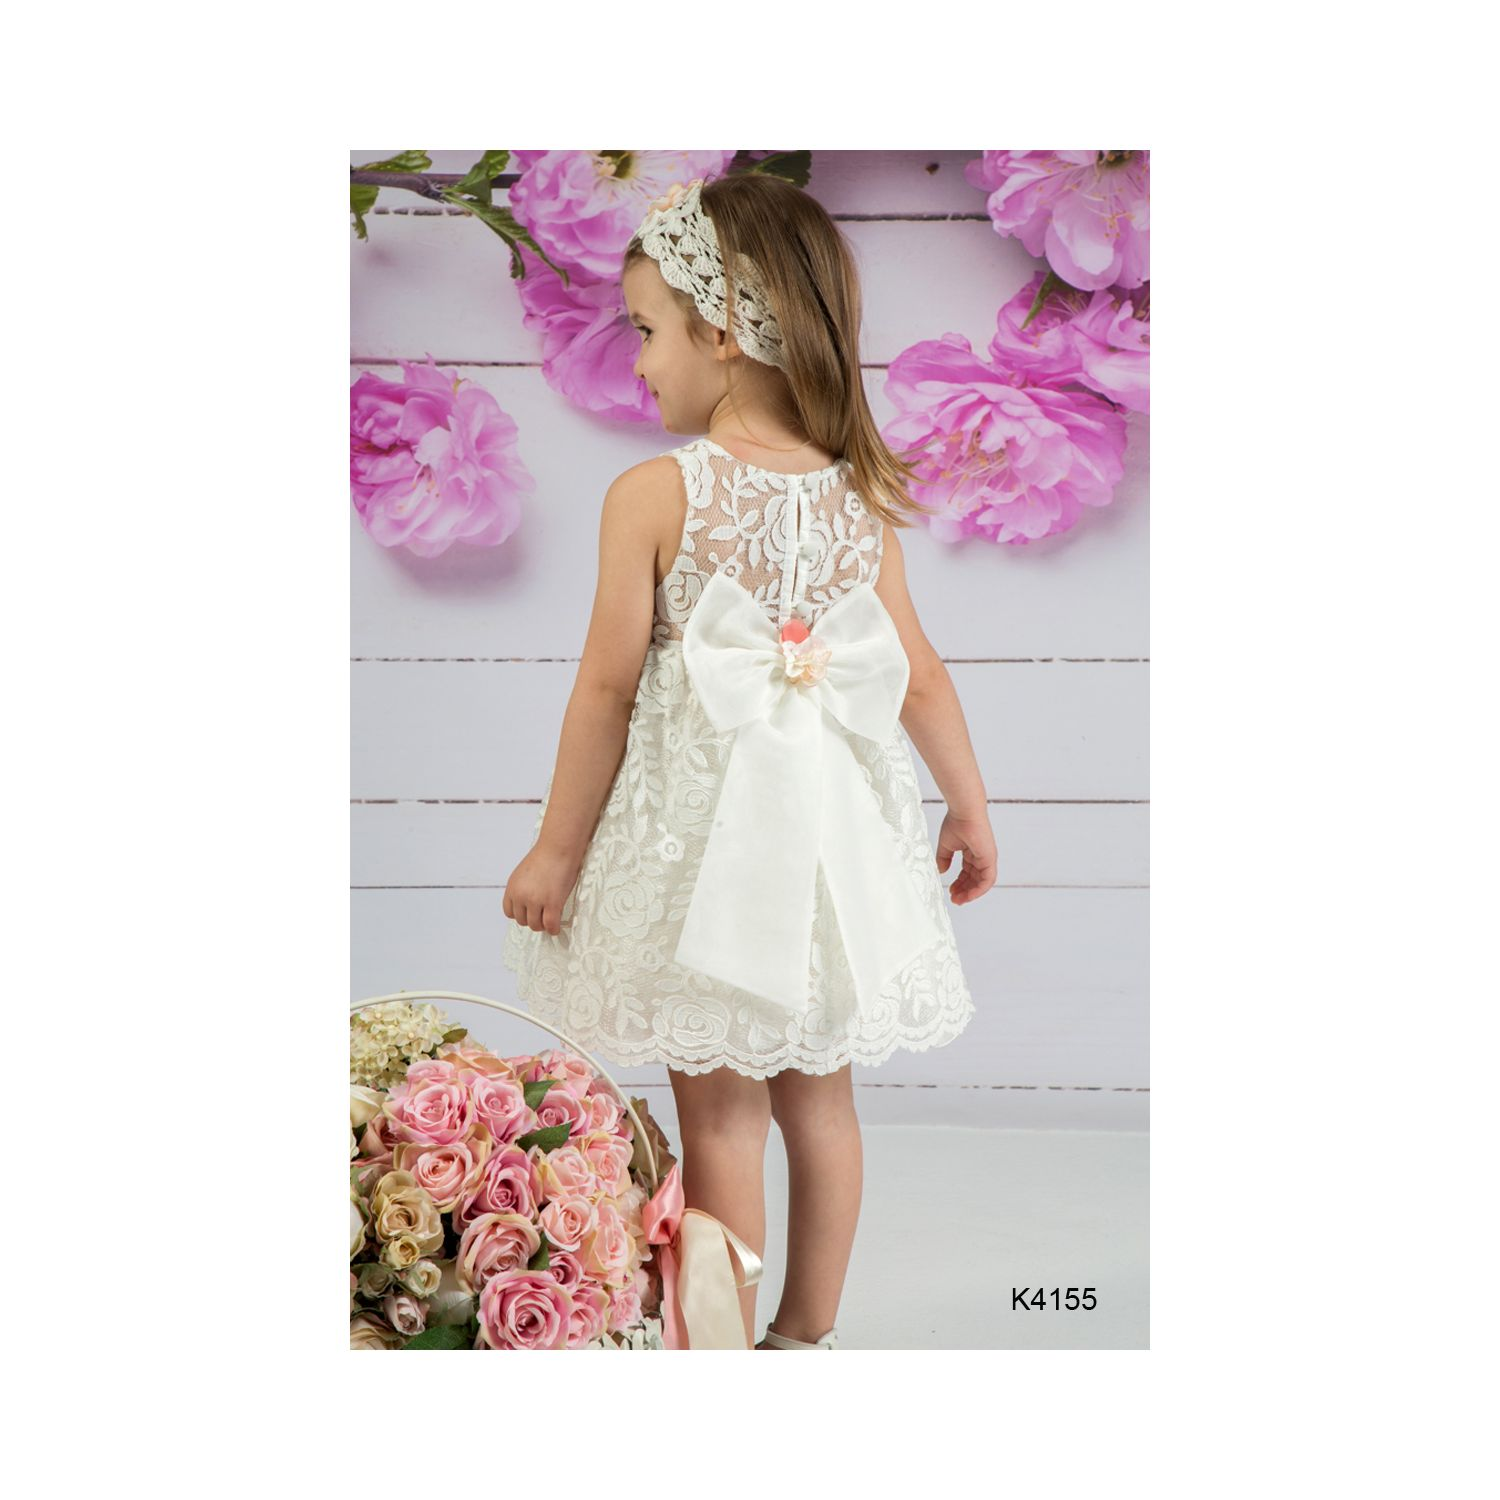 Christening lace gown K4155